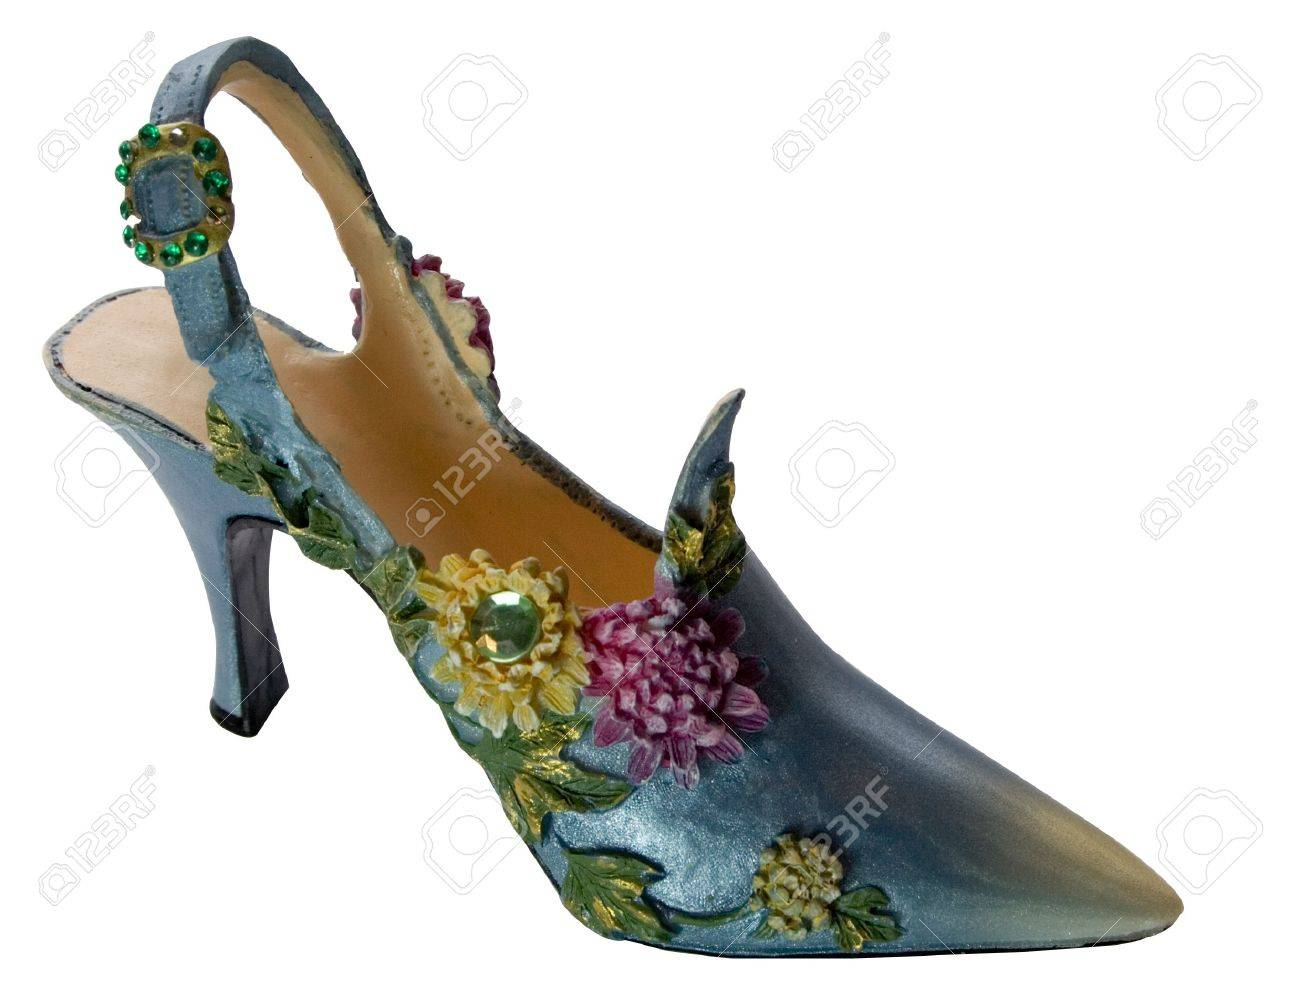 LYNETTE BY BLUEFIN AT RACK ROOM SHOES on The Hunt